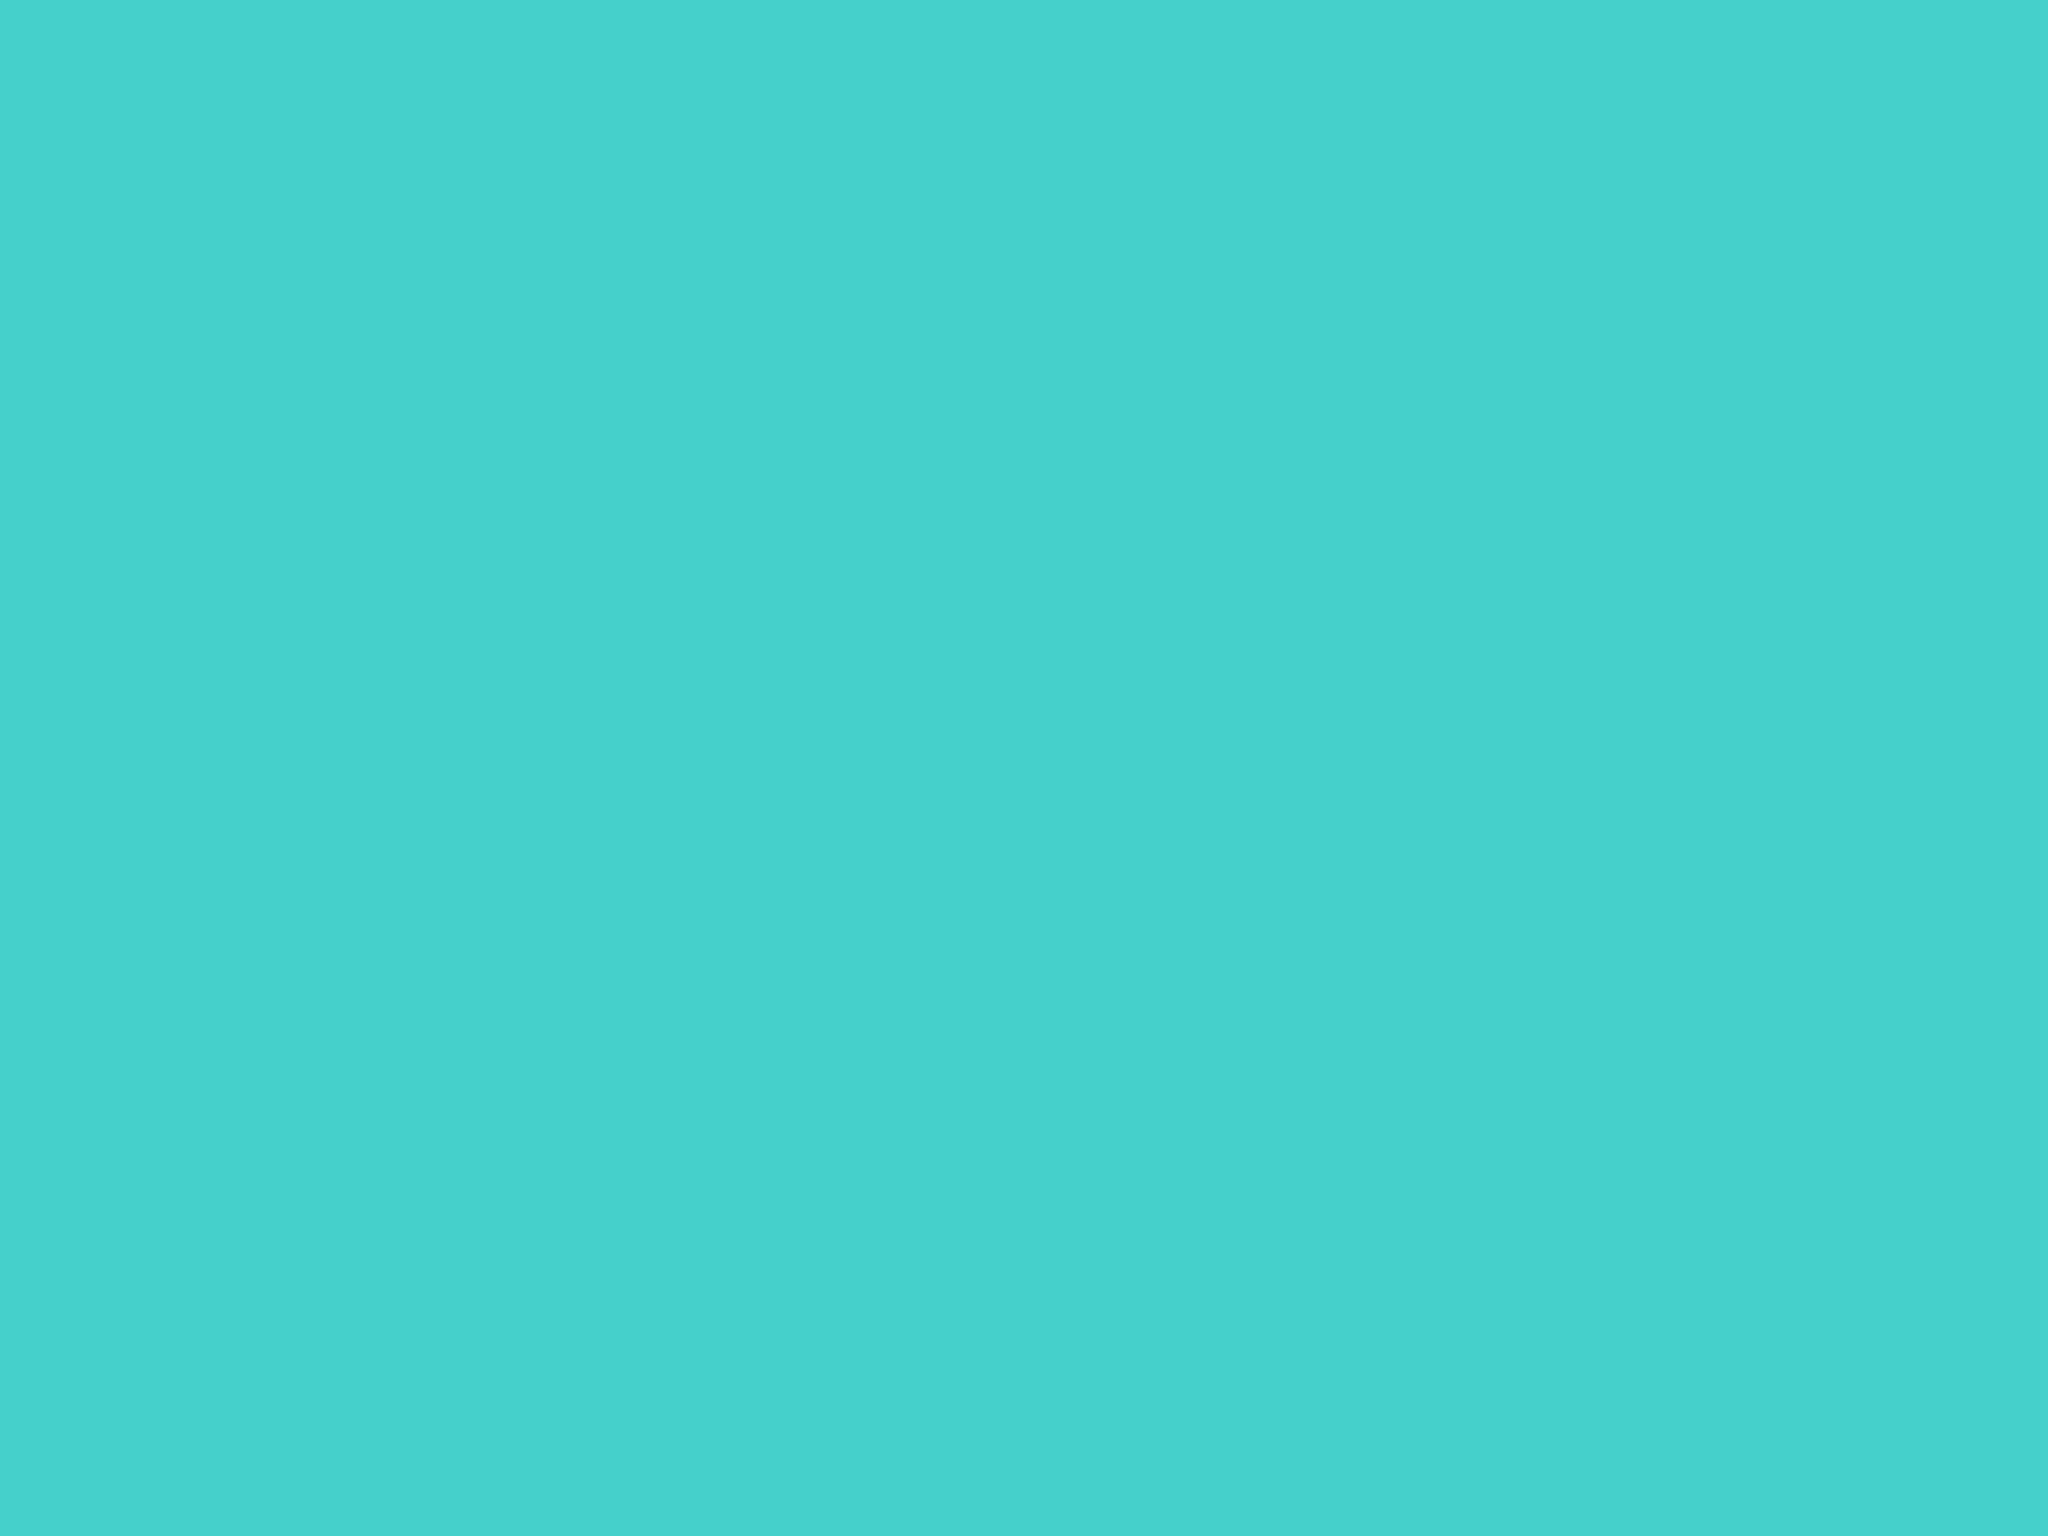 2048x1536 Medium Turquoise Solid Color Background